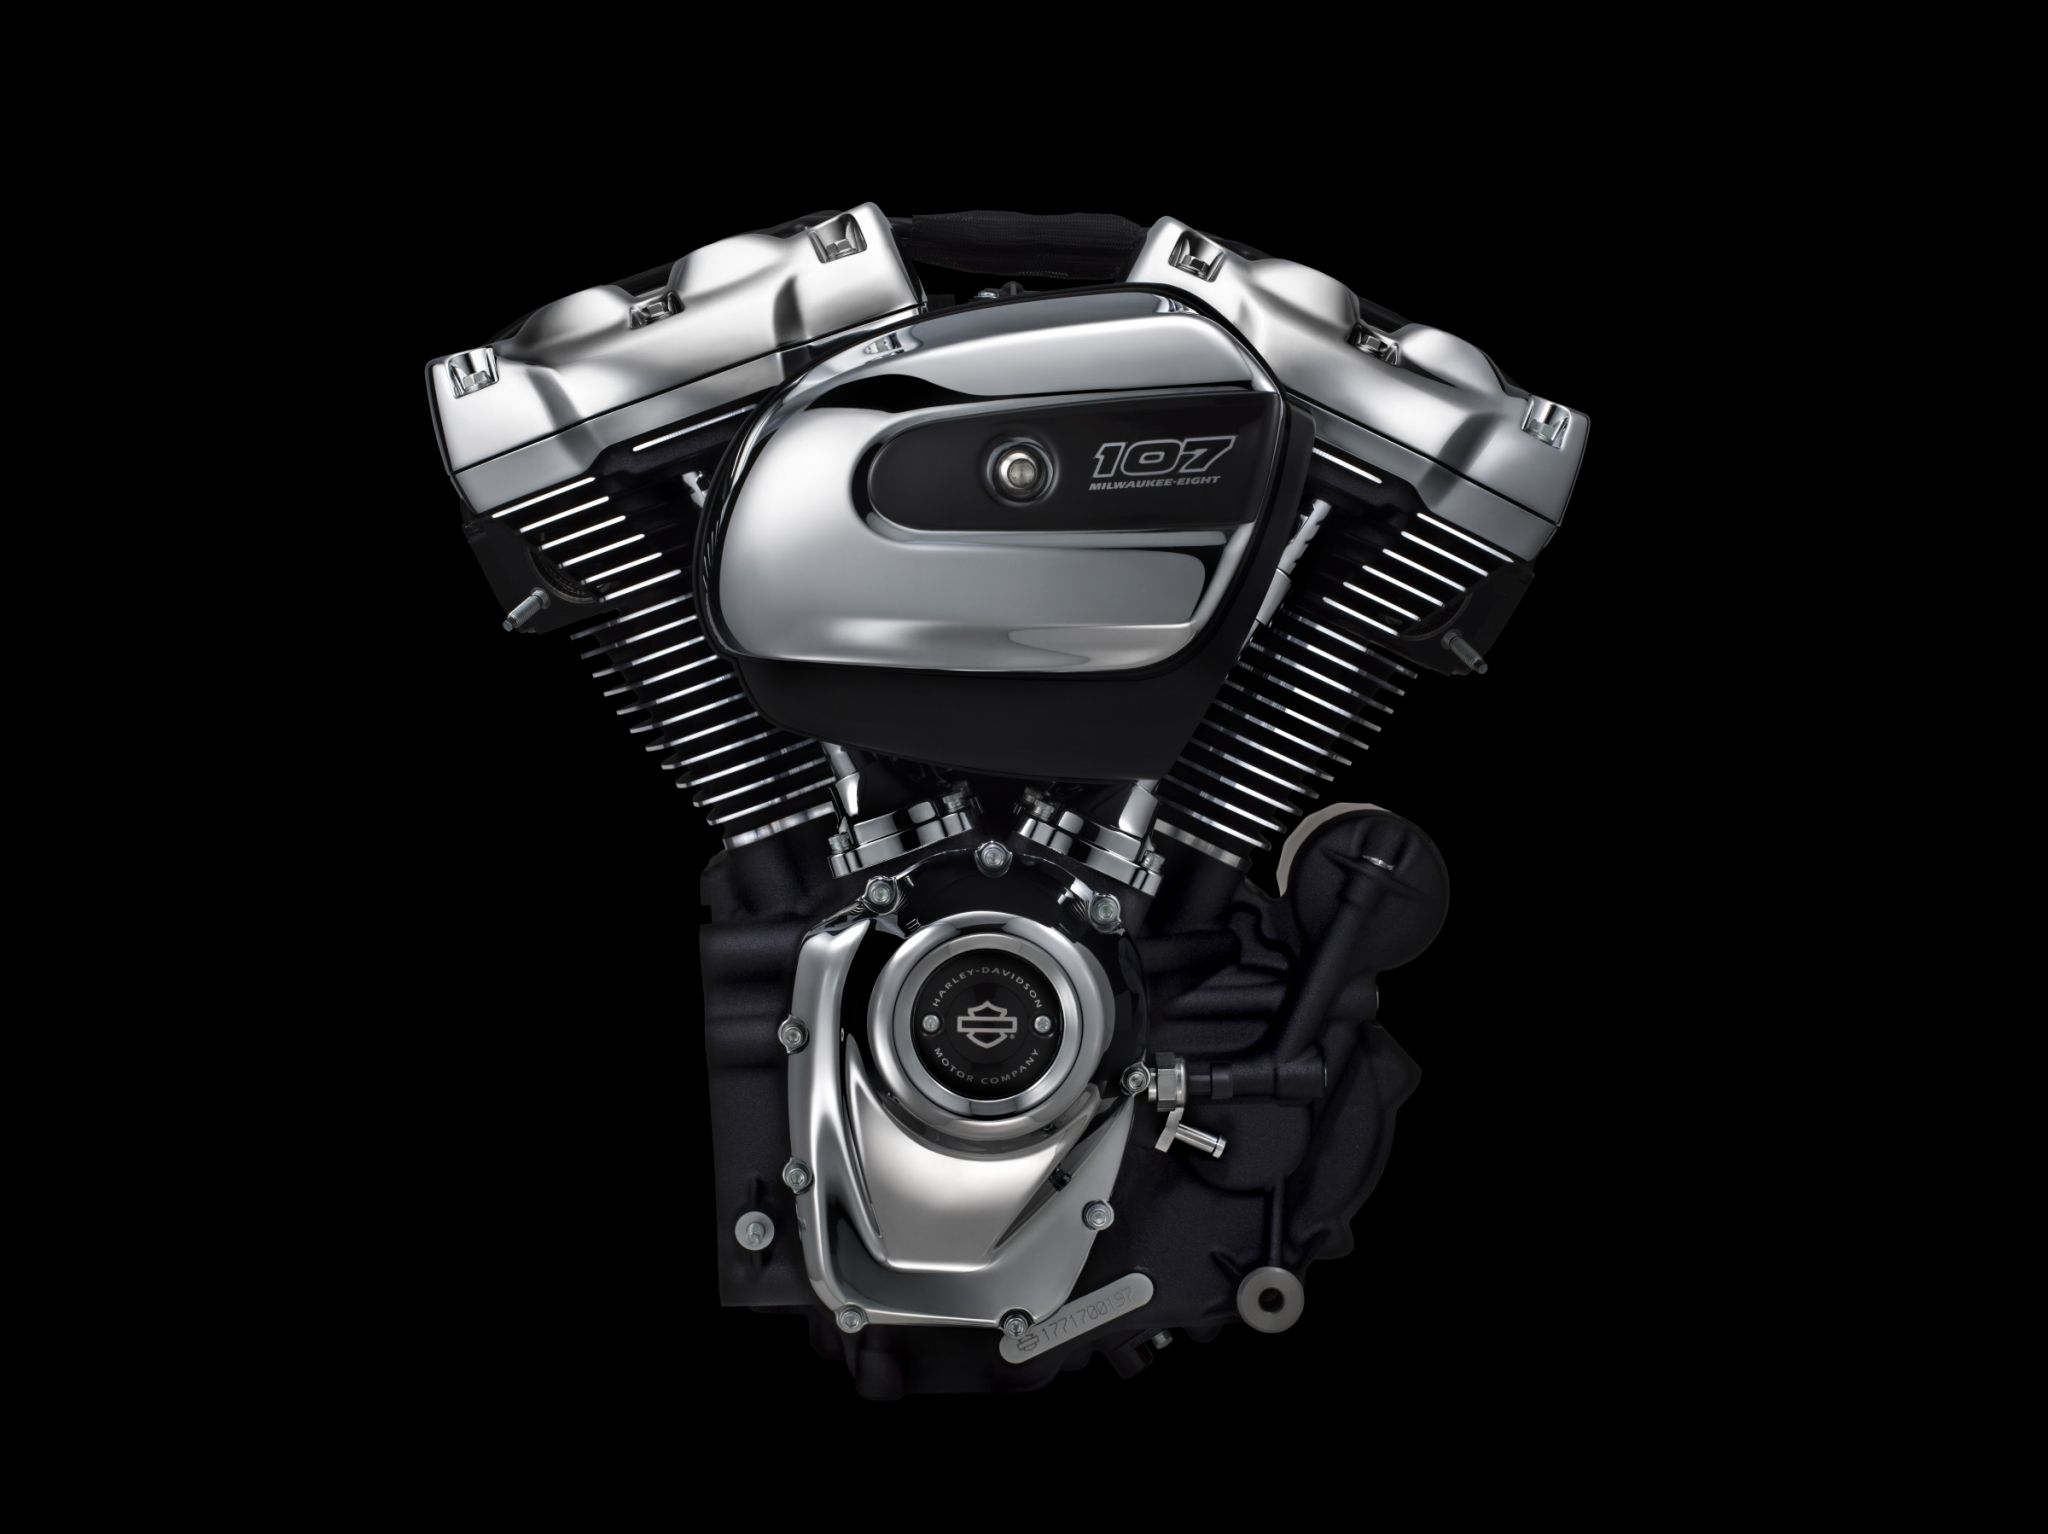 Harley-Davidson launches Milwaukee-Eight V-twin, first major engine redesign since '98